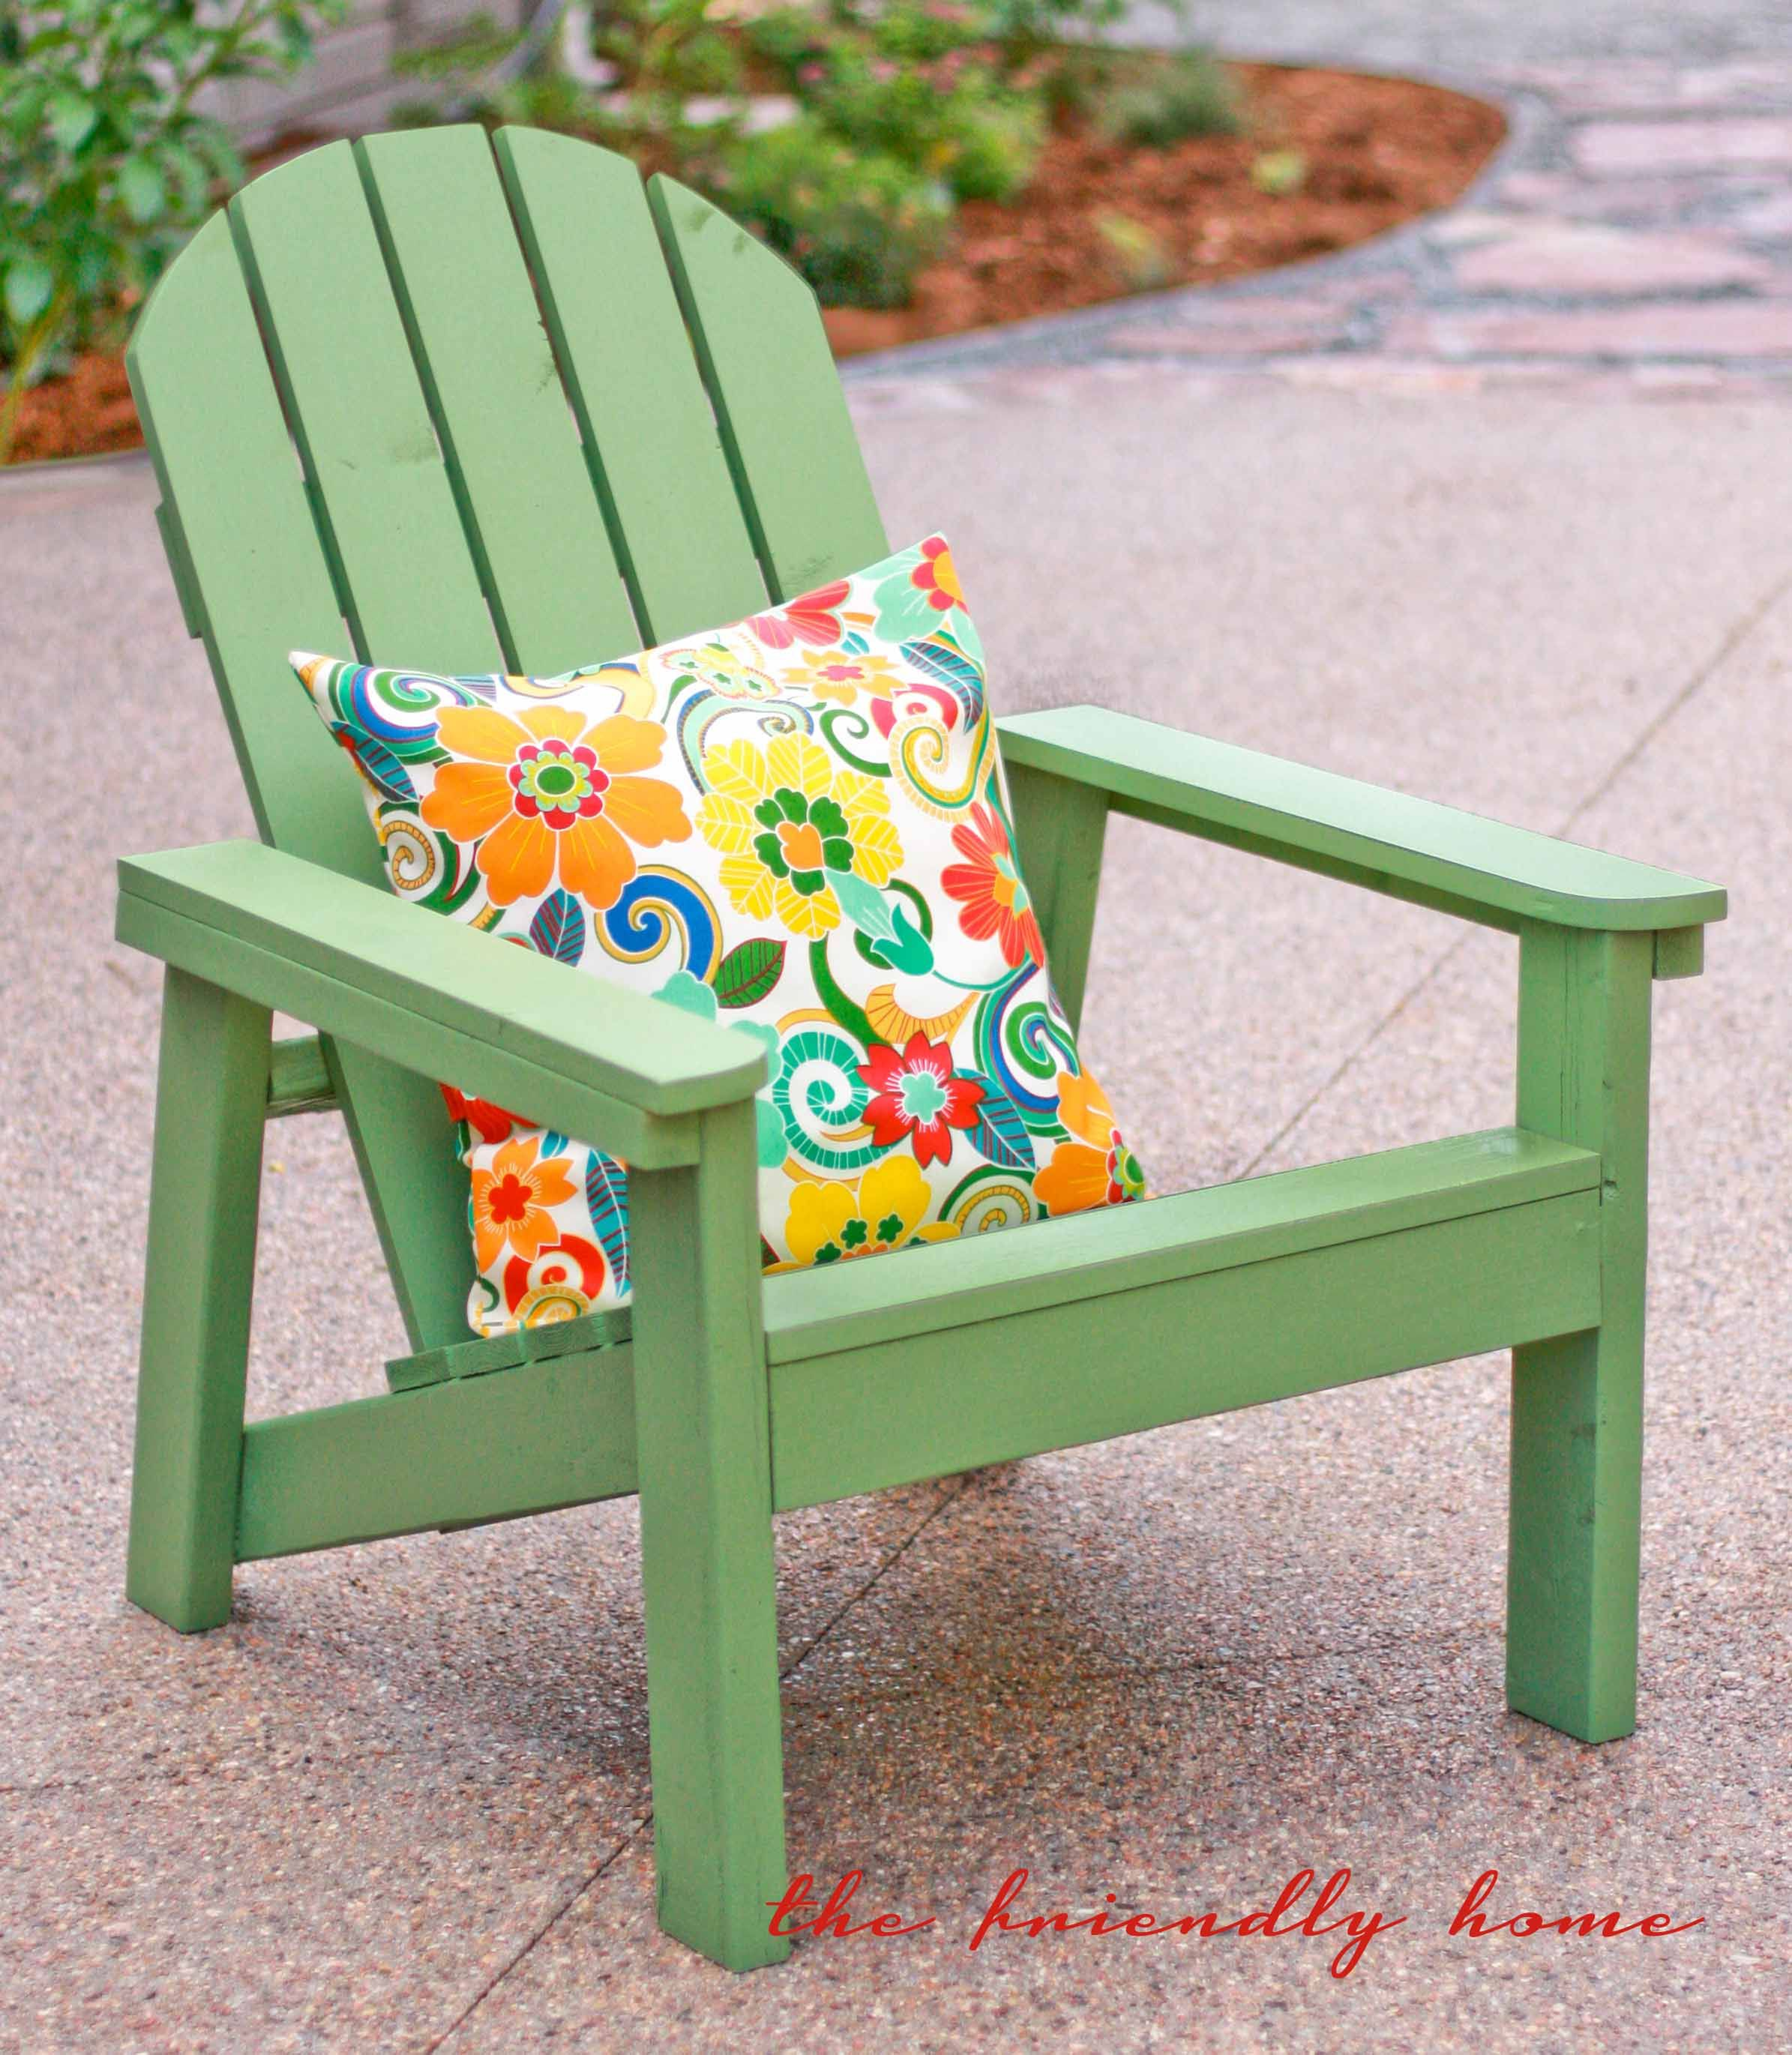 Green Adirondack Chairs Do It Yourself Home Projects